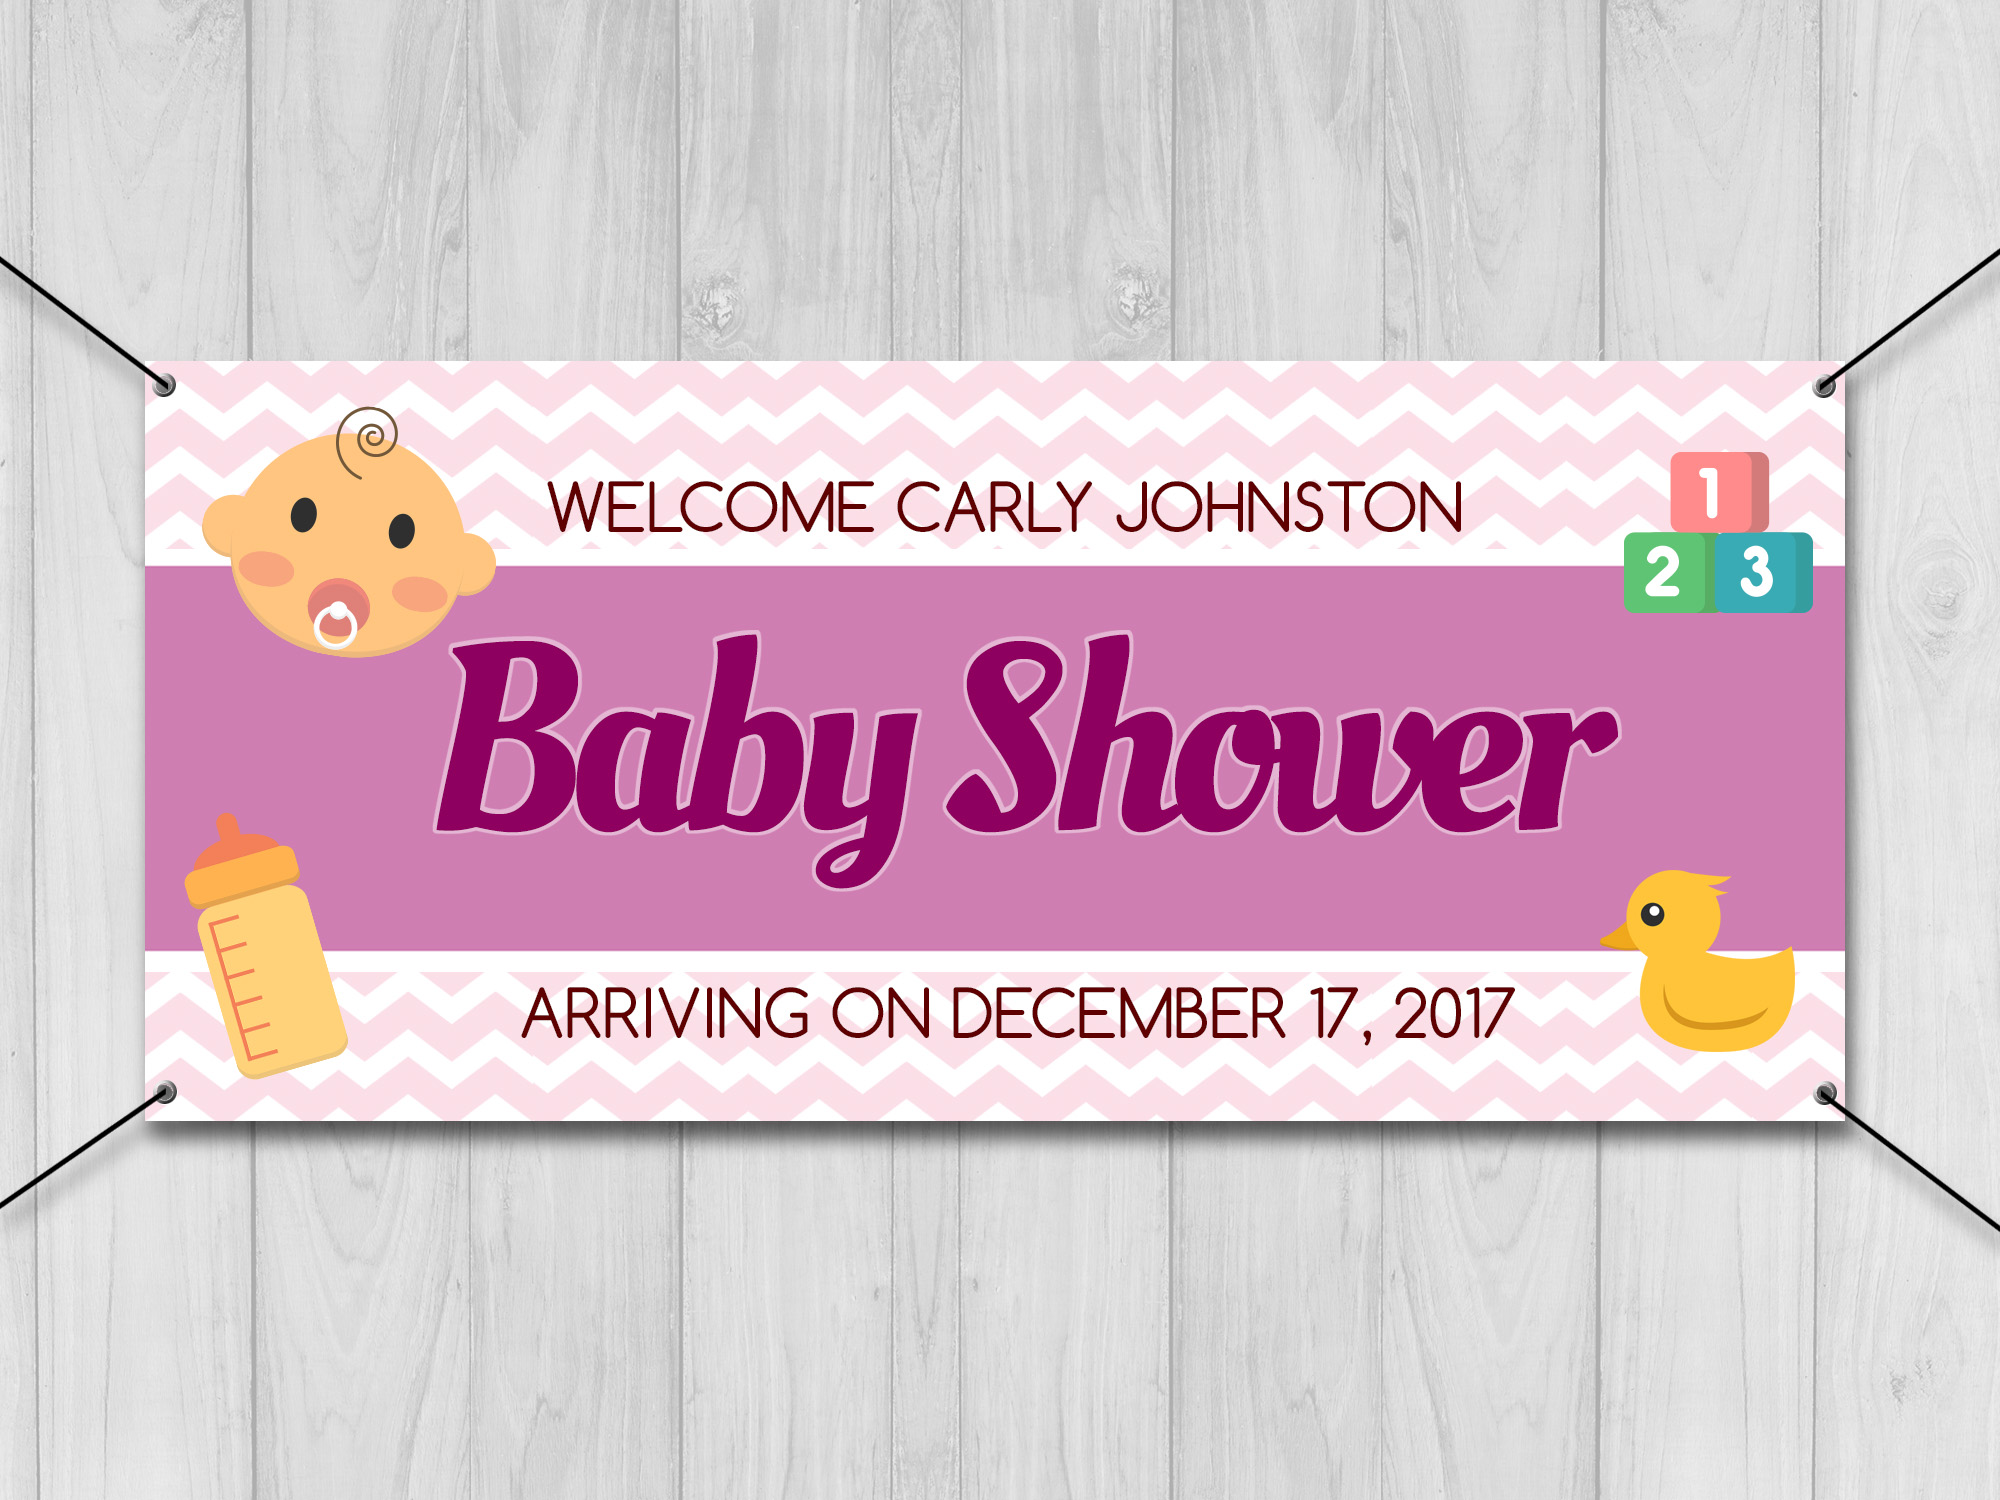 https://www.abcprintroom.com/images/products_gallery_images/pic_banner_baby44.jpg